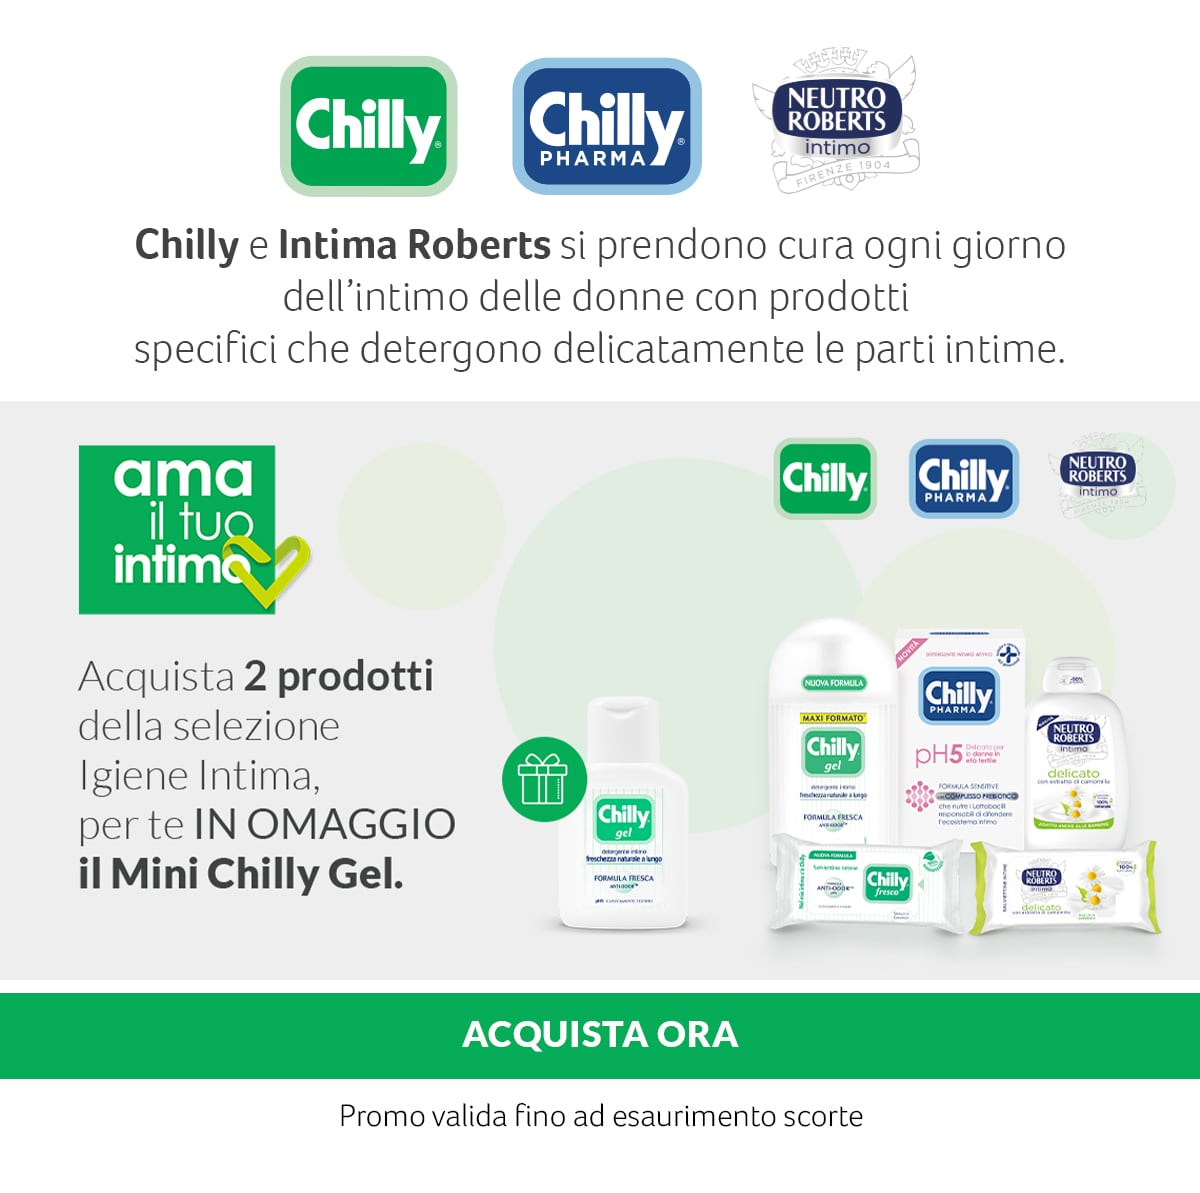 Chilly. In OMAGGIO Mini Chilly Gel.